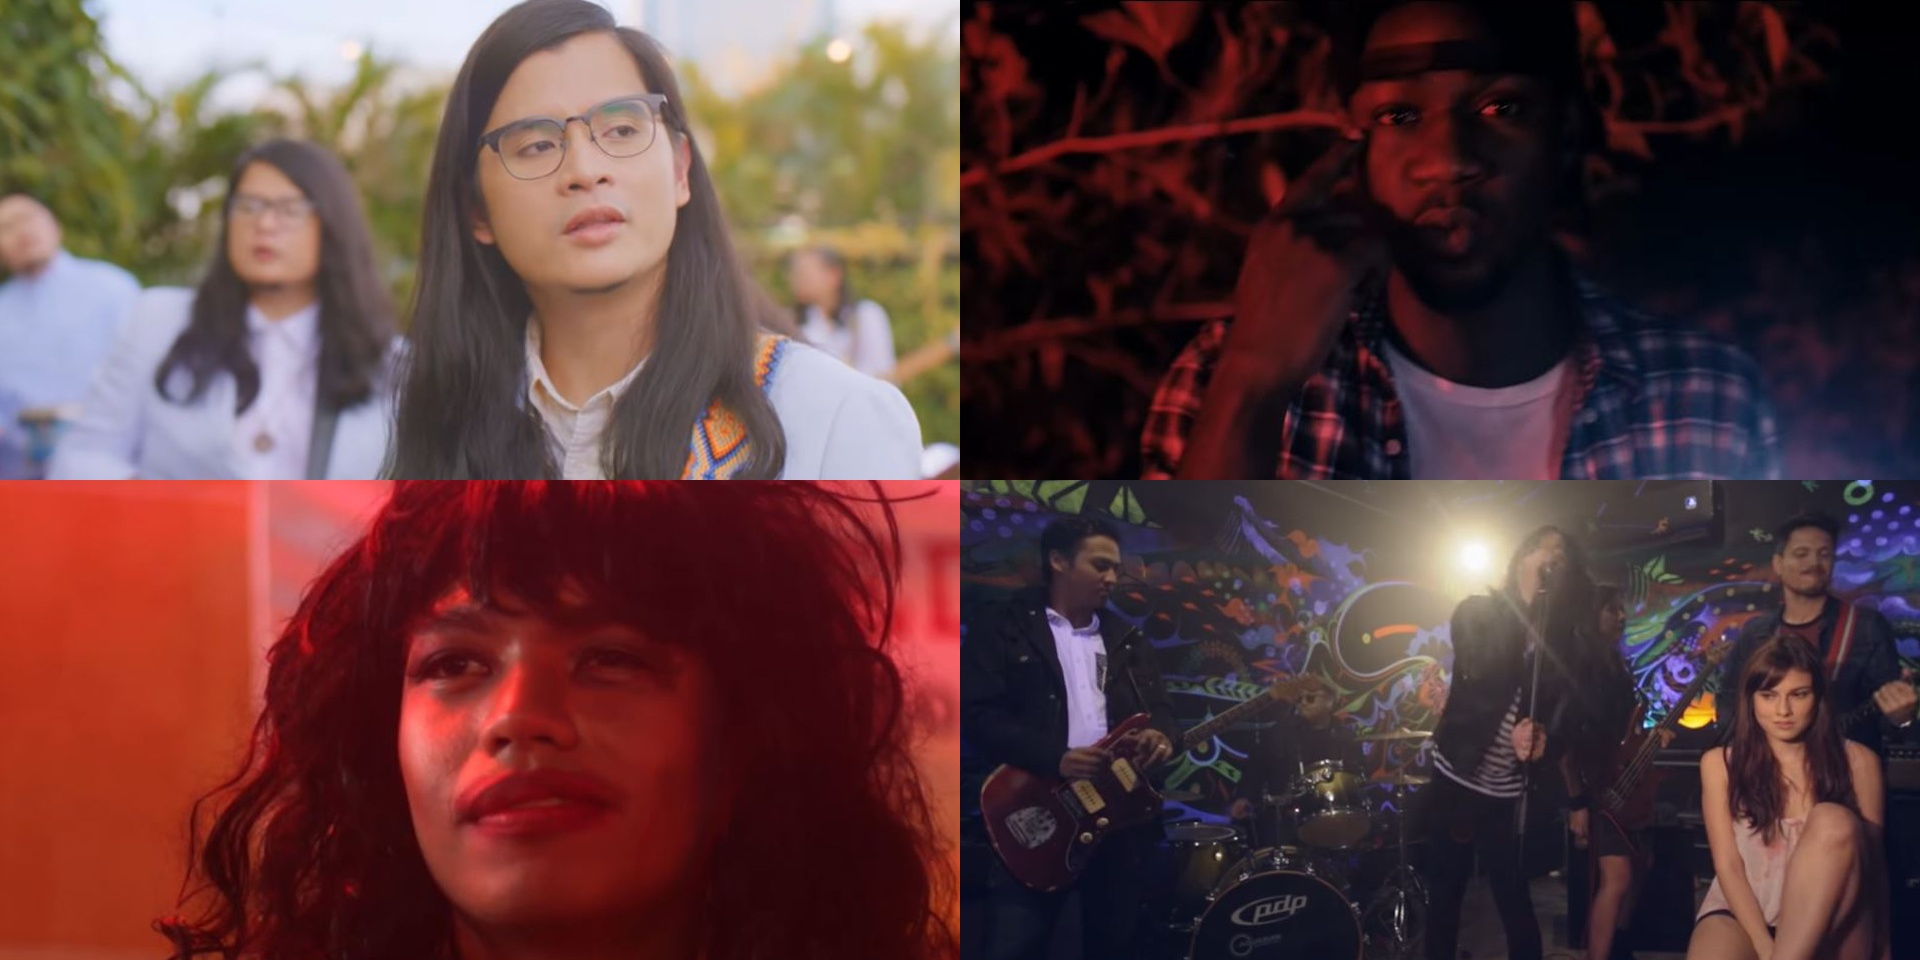 Discover the power of Filipino music videos in pop culture at  Motor Only Sync: Philippines Music Videos as Moving Images